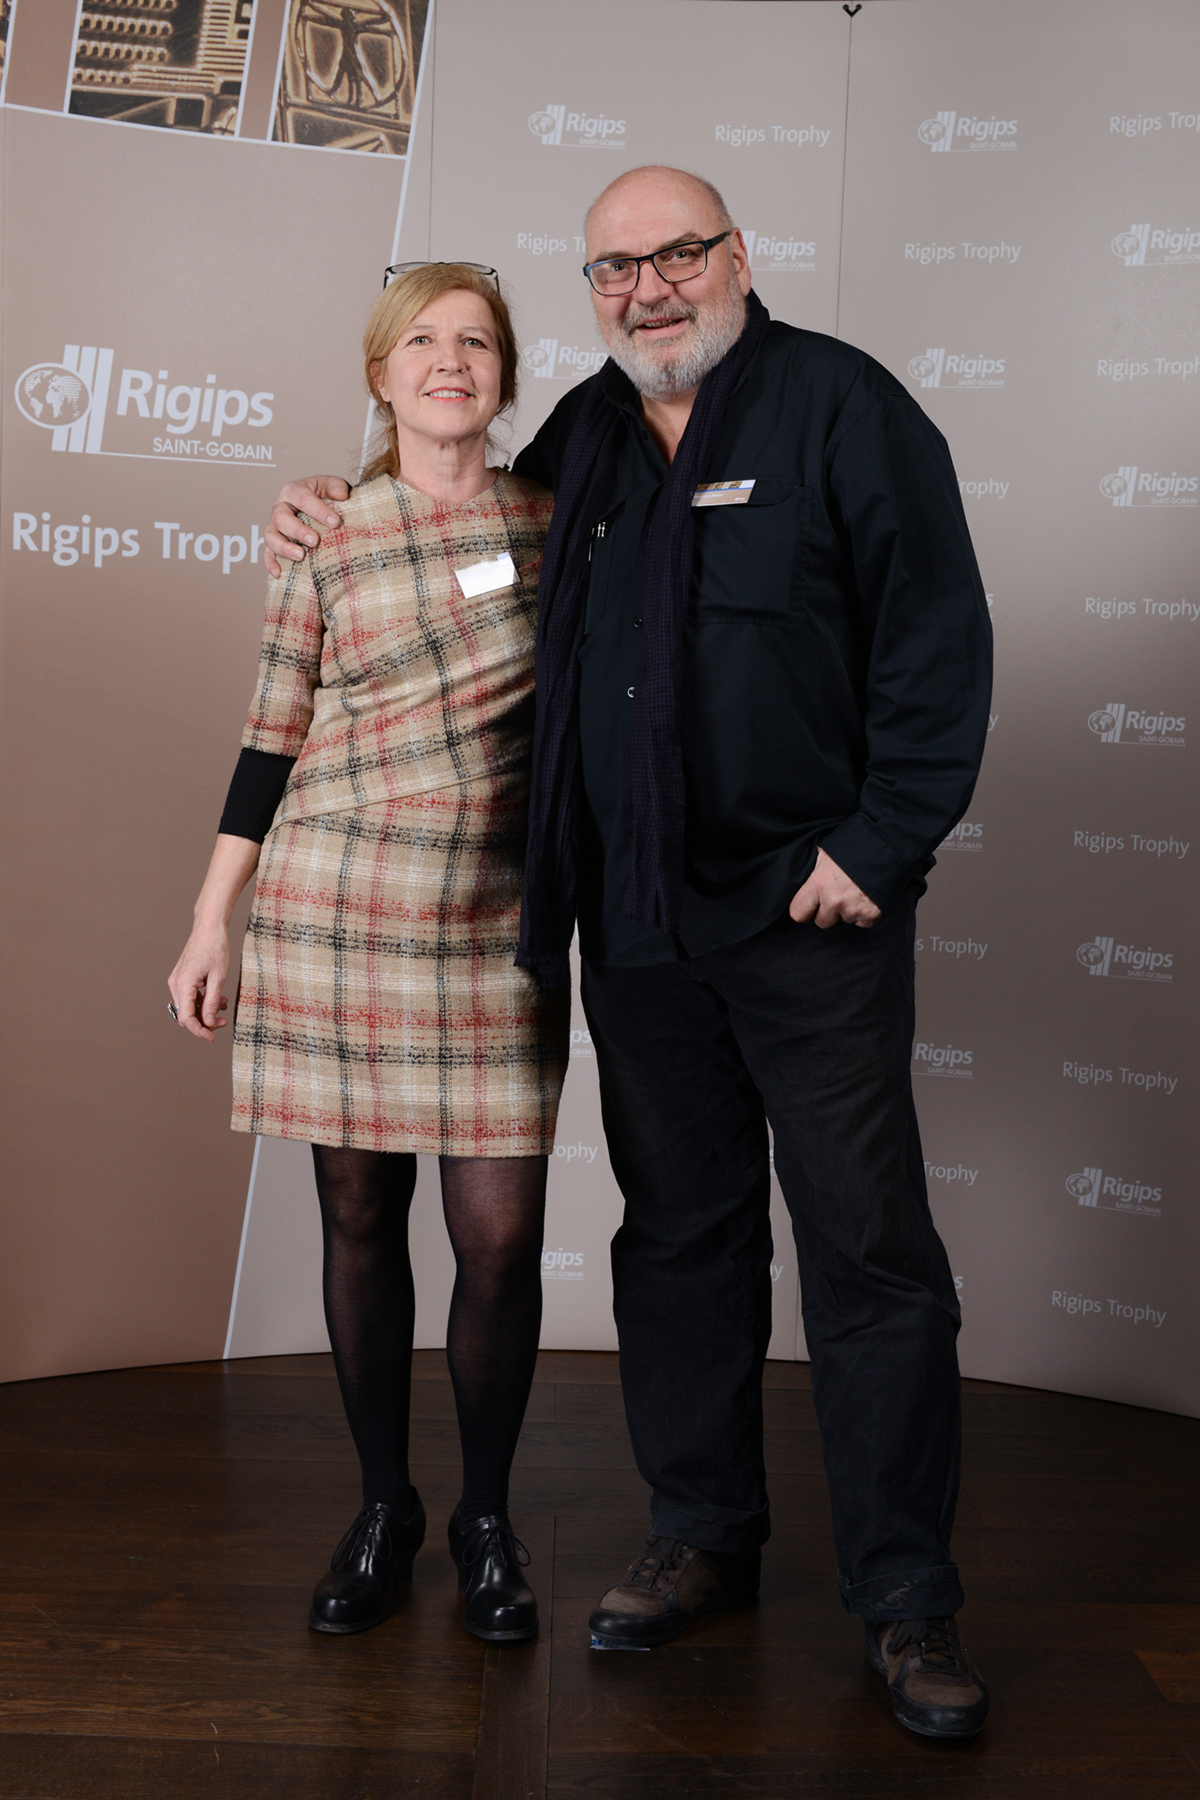 Rigips Trophy 16_0303